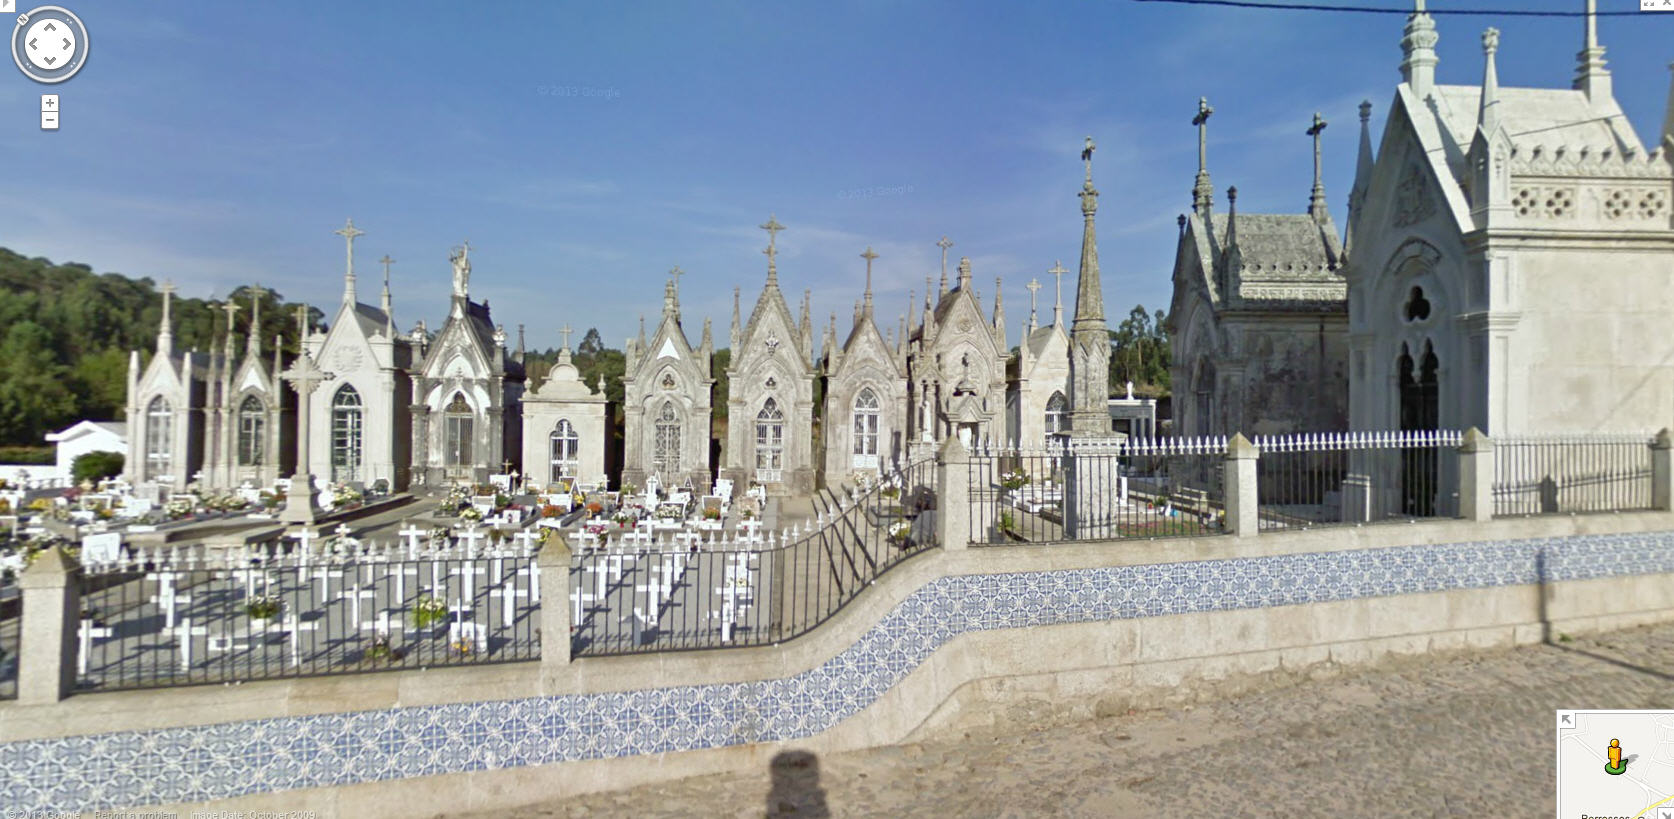 They take cemeteries seriously in Portugal